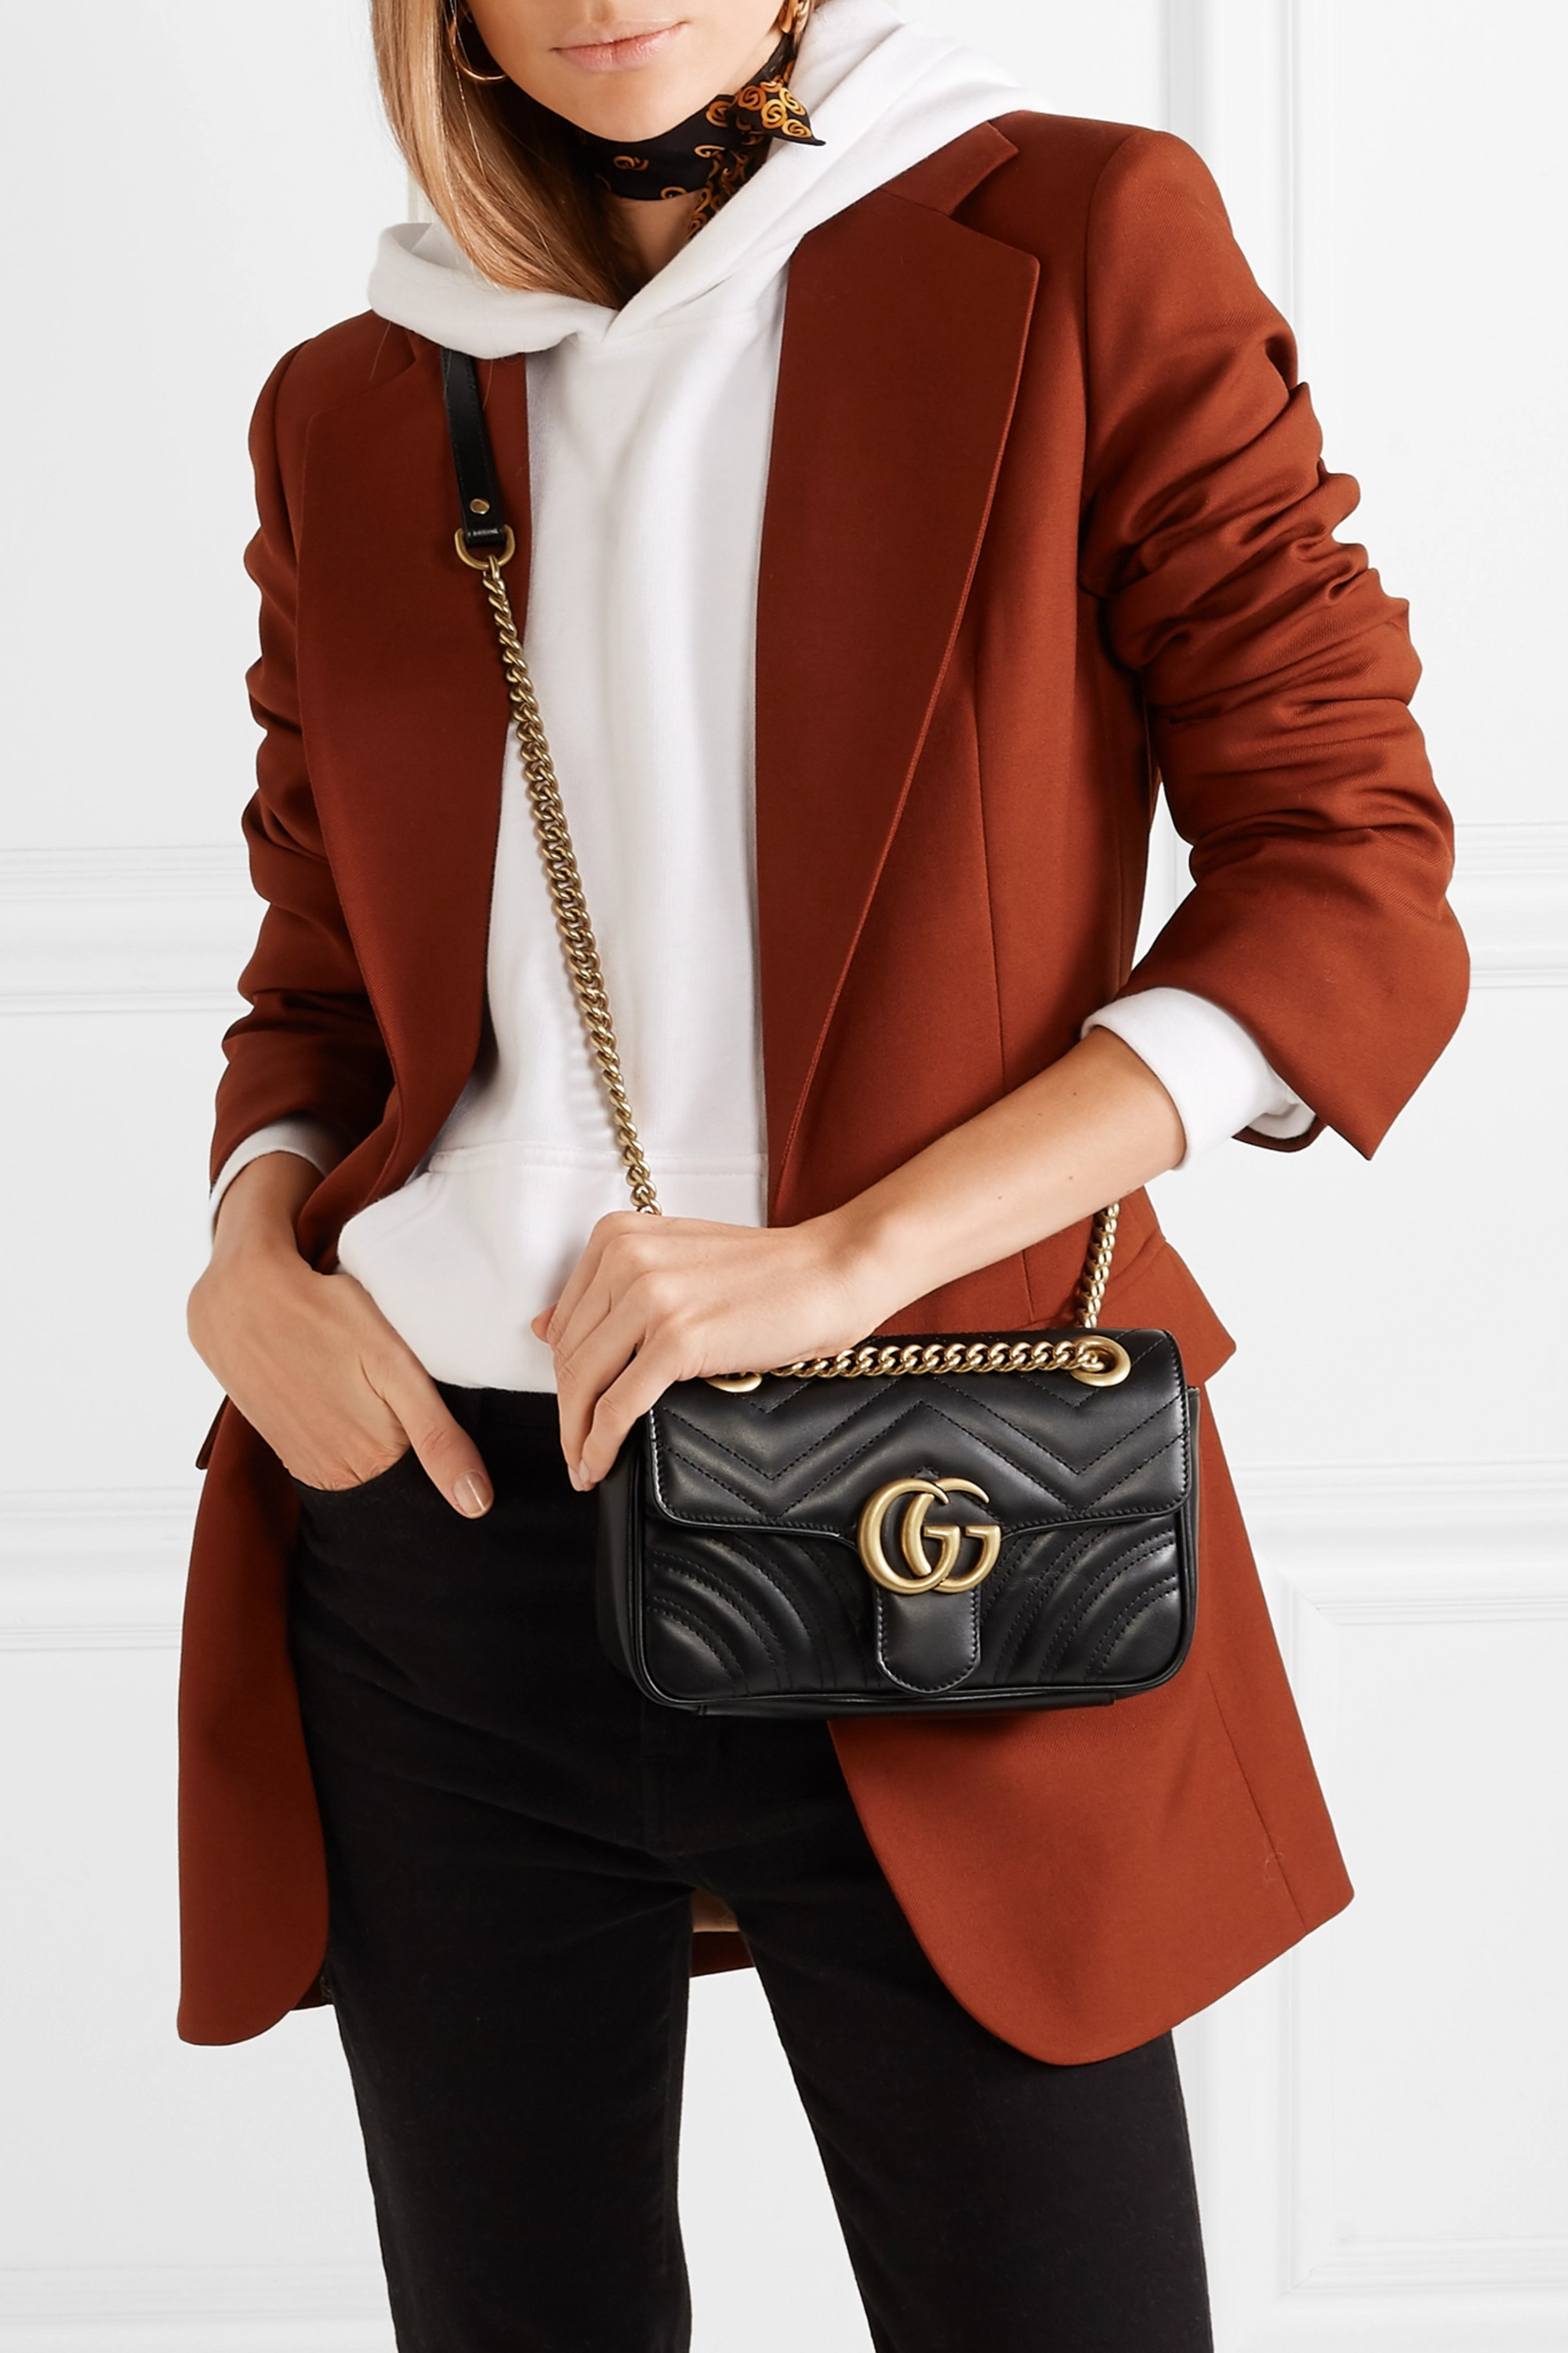 Gucci GG Marmont quilted leather shoulder bag